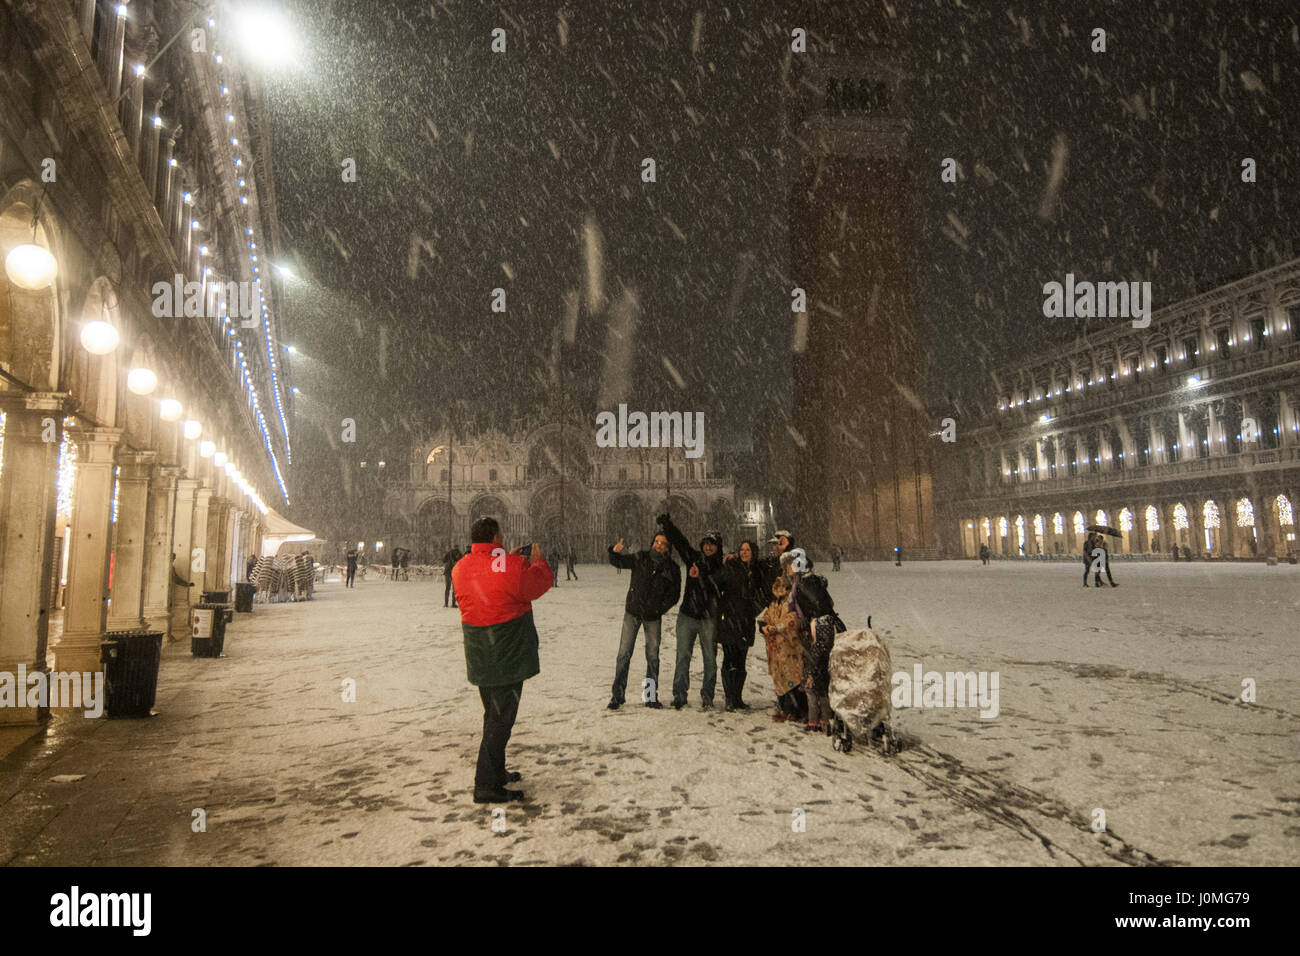 People take pictures during an heavy snow fall in Venice. - Stock Image